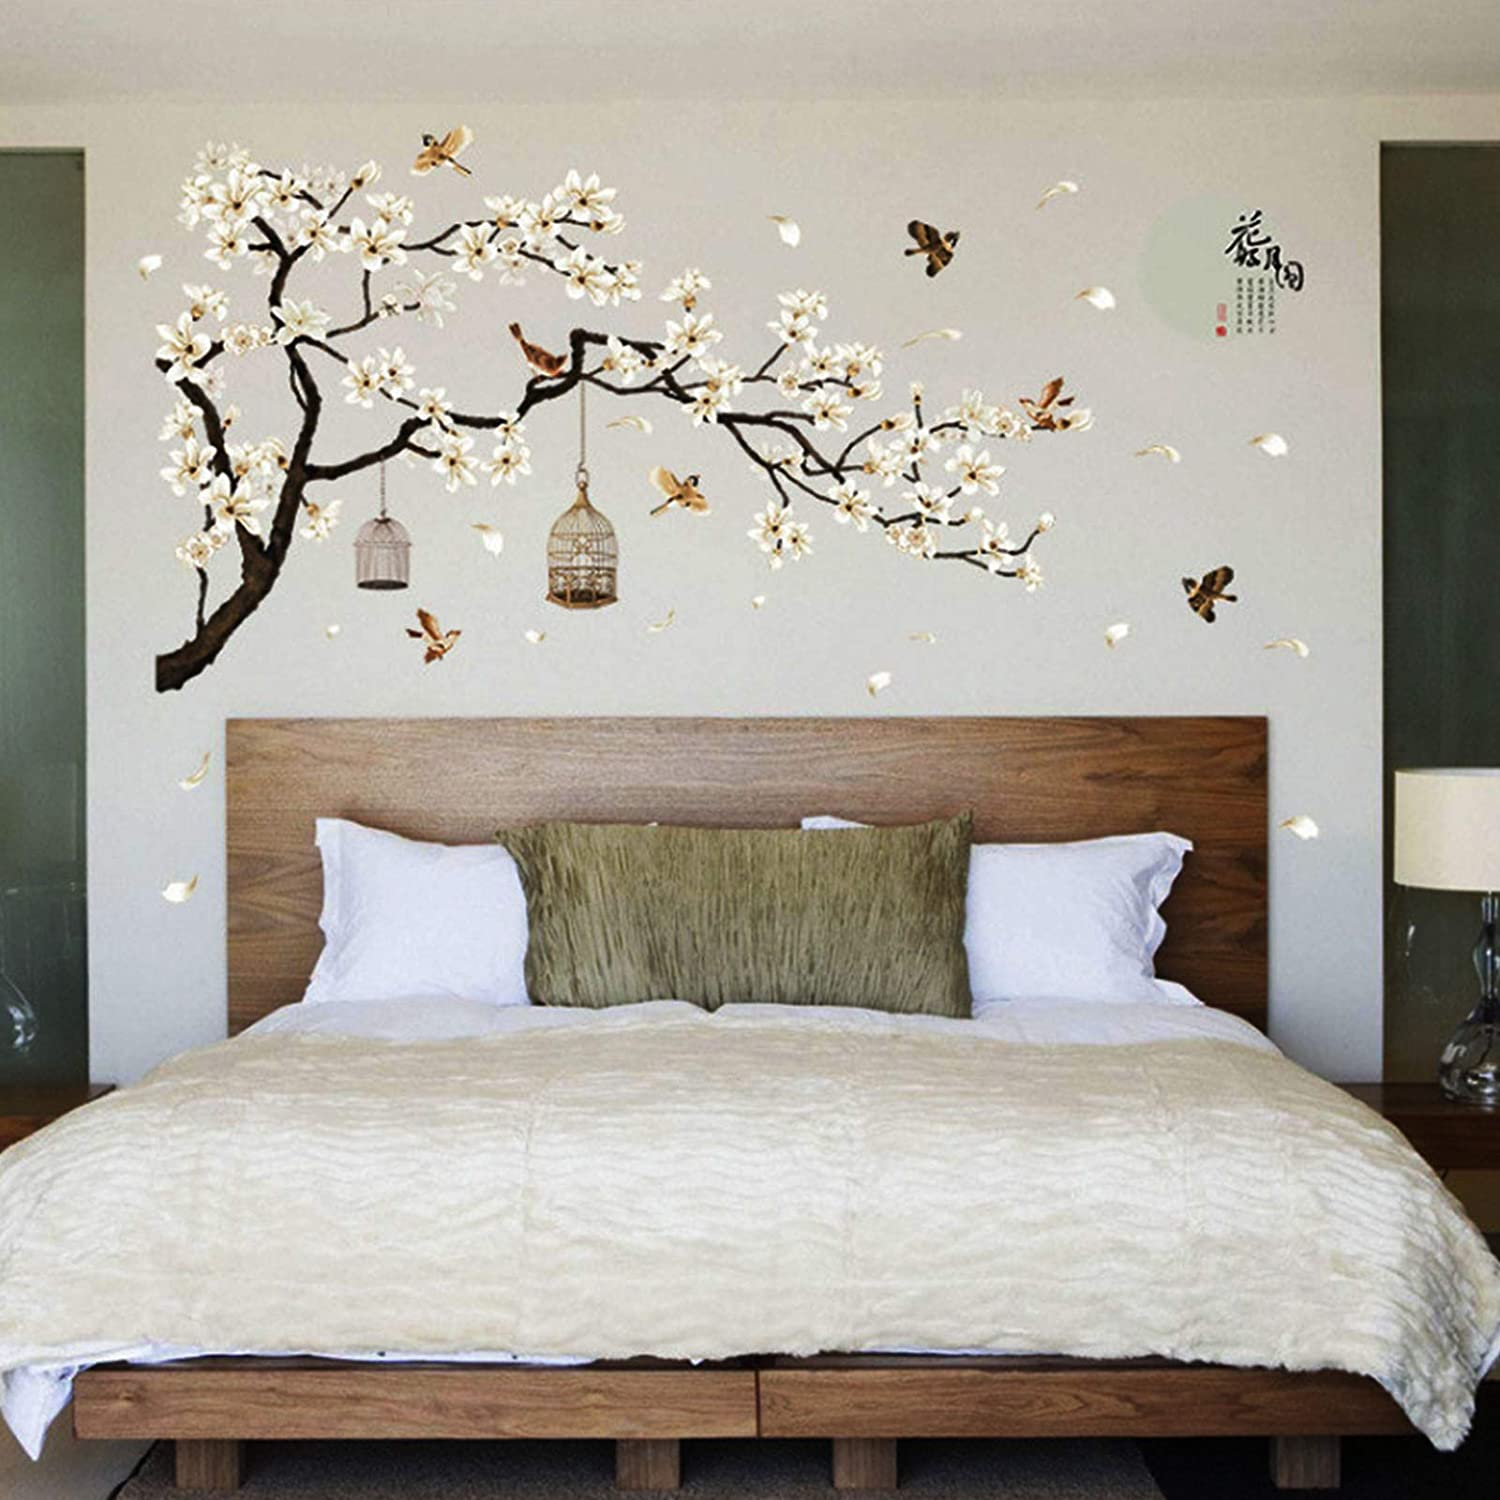 White Cherry Blossom Flower Tree Birds Wall Stickers Waterproof Wall Paper for TV Background Decor Mural Art Decal Home Decor